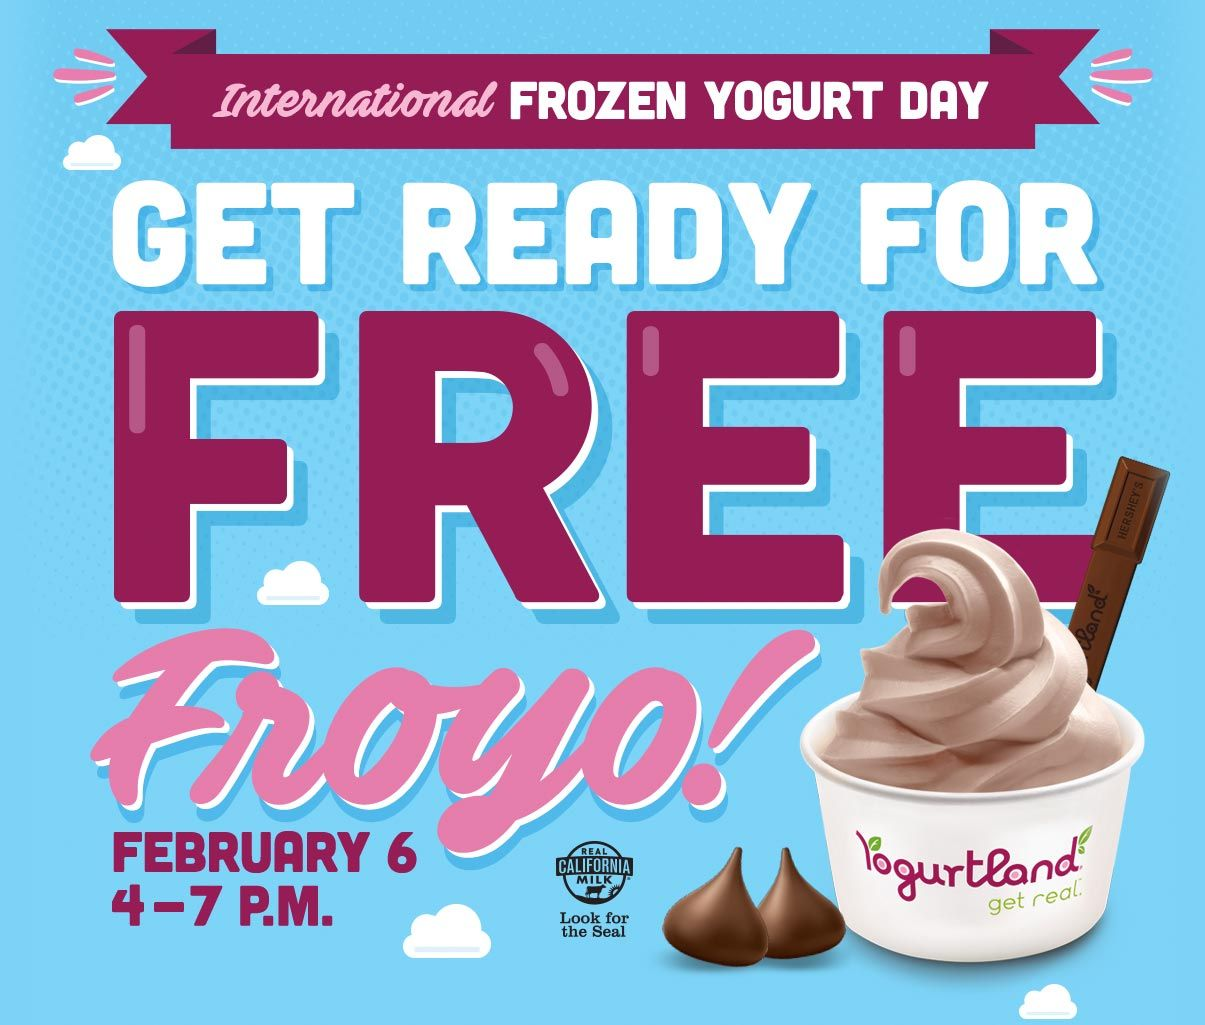 FREE Froyo at Yogurtland on February 6th!